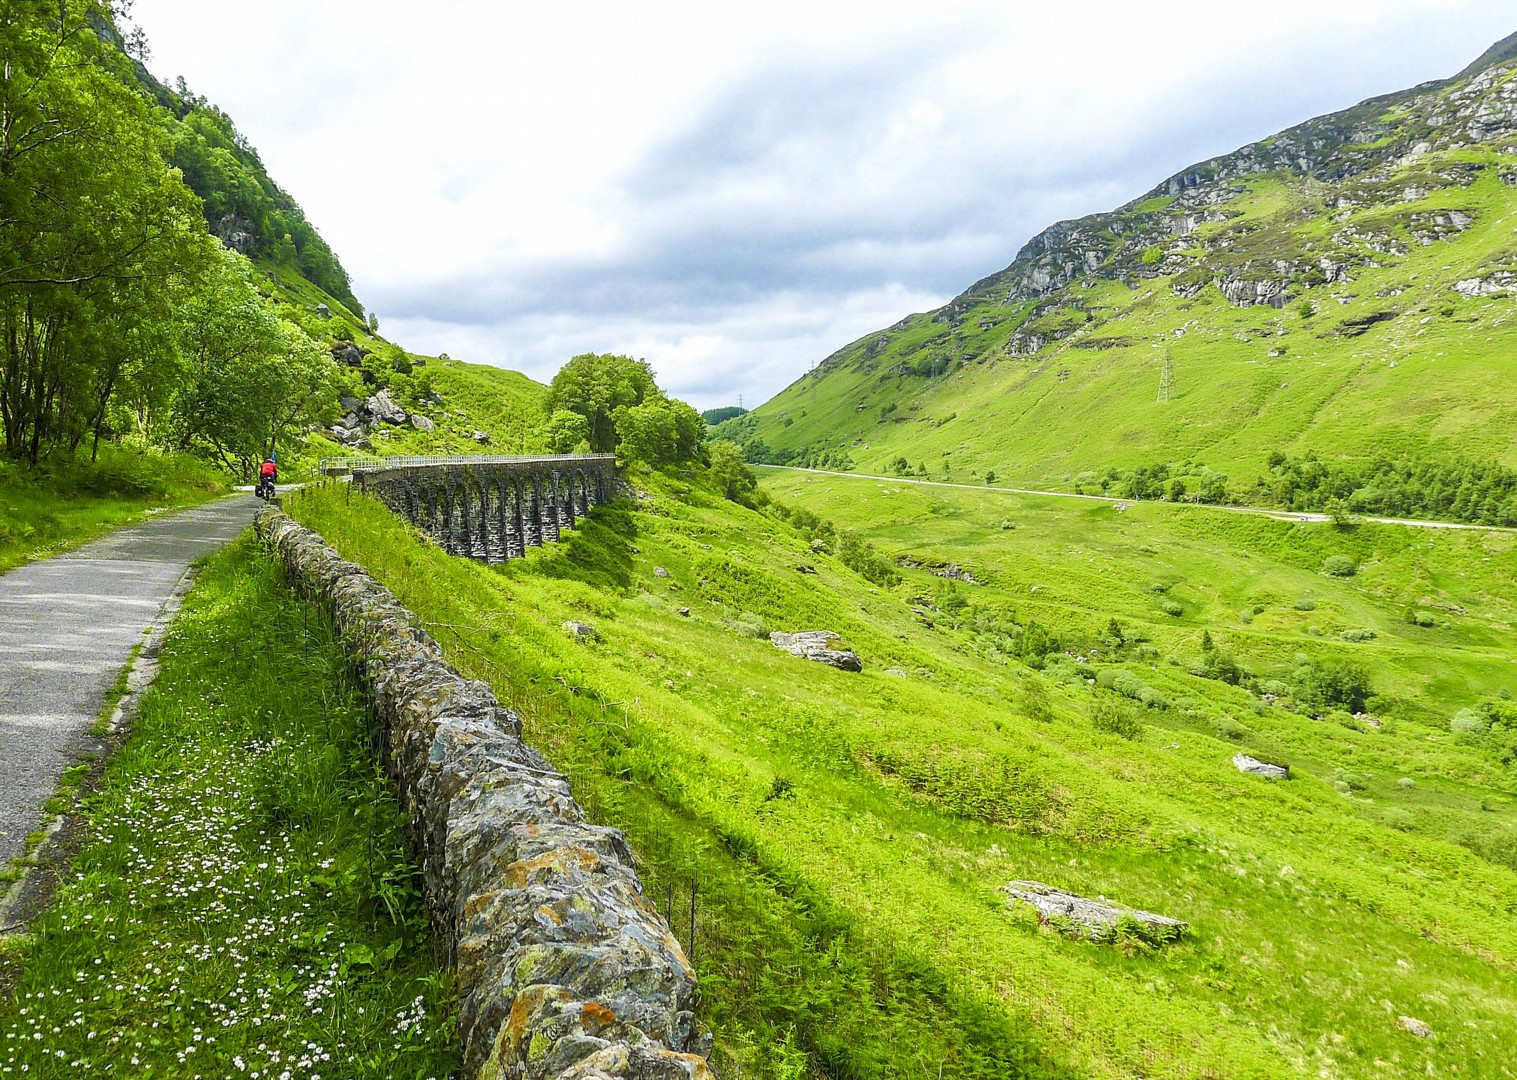 cycle-paths-uk-scotland-lochs-and-glens-countryside-tour-bike.jpg - NEW! UK - Scotland - Lochs and Glens - Leisure Cycling